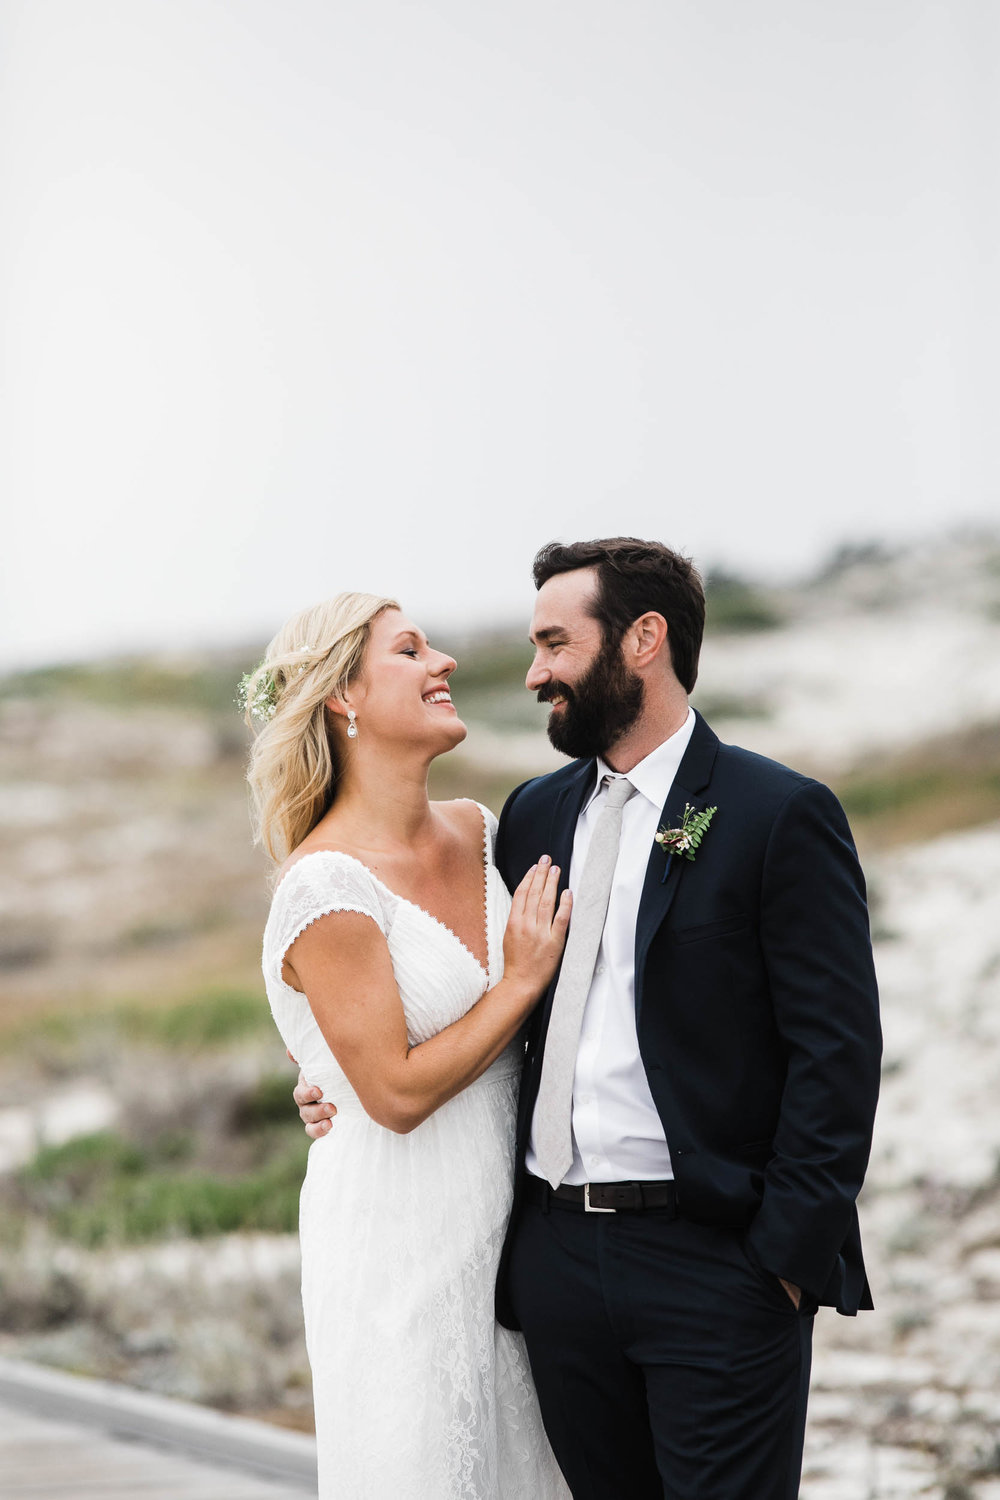 C+K Asilomar Pacific Grove Wedding Buena Lane Photography